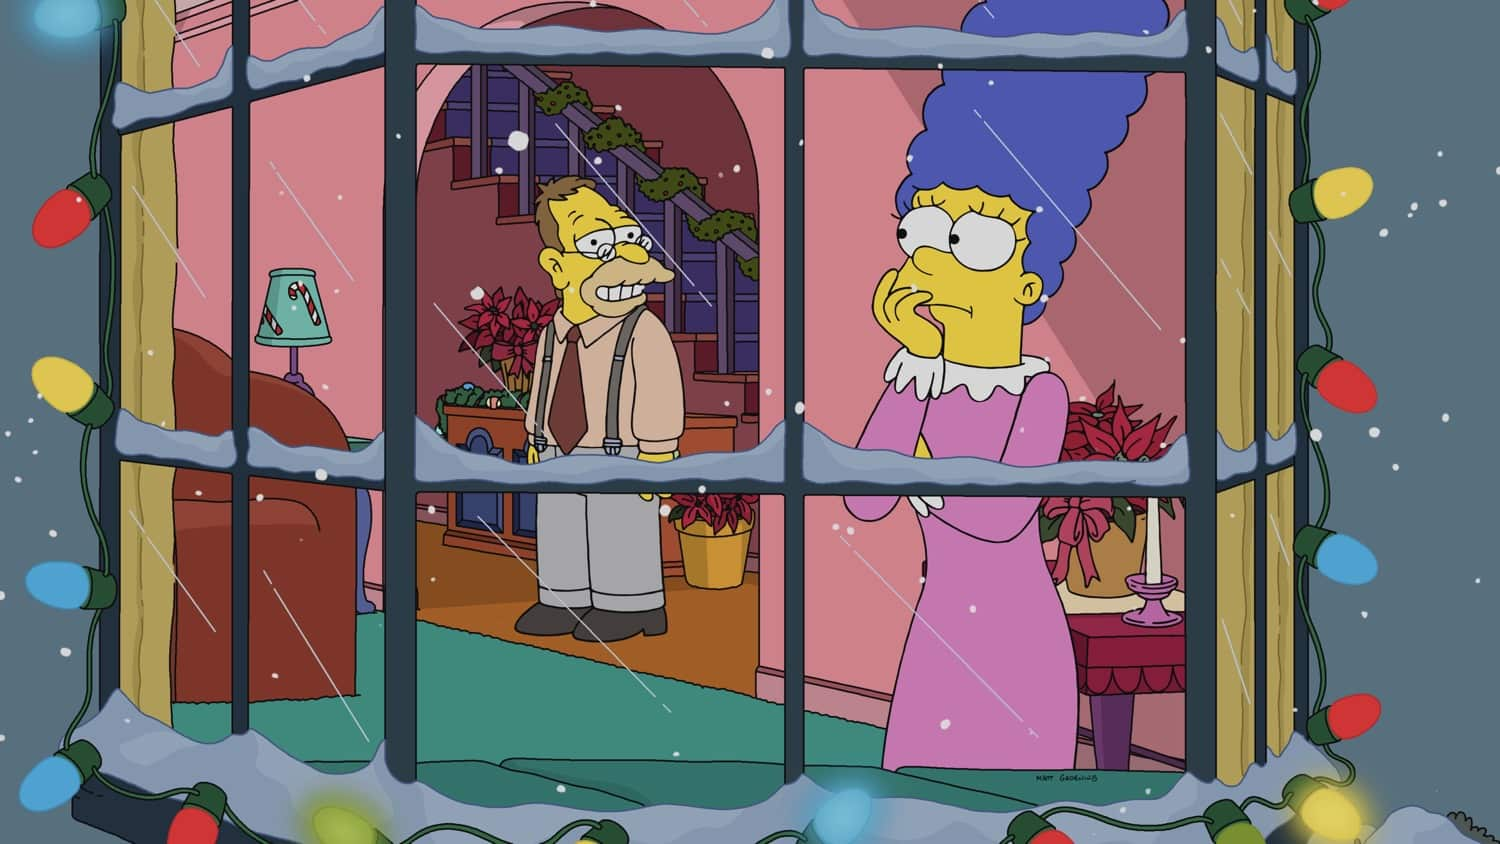 """THE SIMPSONS: Learn a secret of Flanders' past and discover a never-before-seen room in the Simpson home in the """"Manger Things"""" milestone 700th episode of THE SIMPSONS airing Sunday, March 21 (8:00-8:30 PM ET/PT) on FOX. THE SIMPSONS © 2021 by 20th Television."""